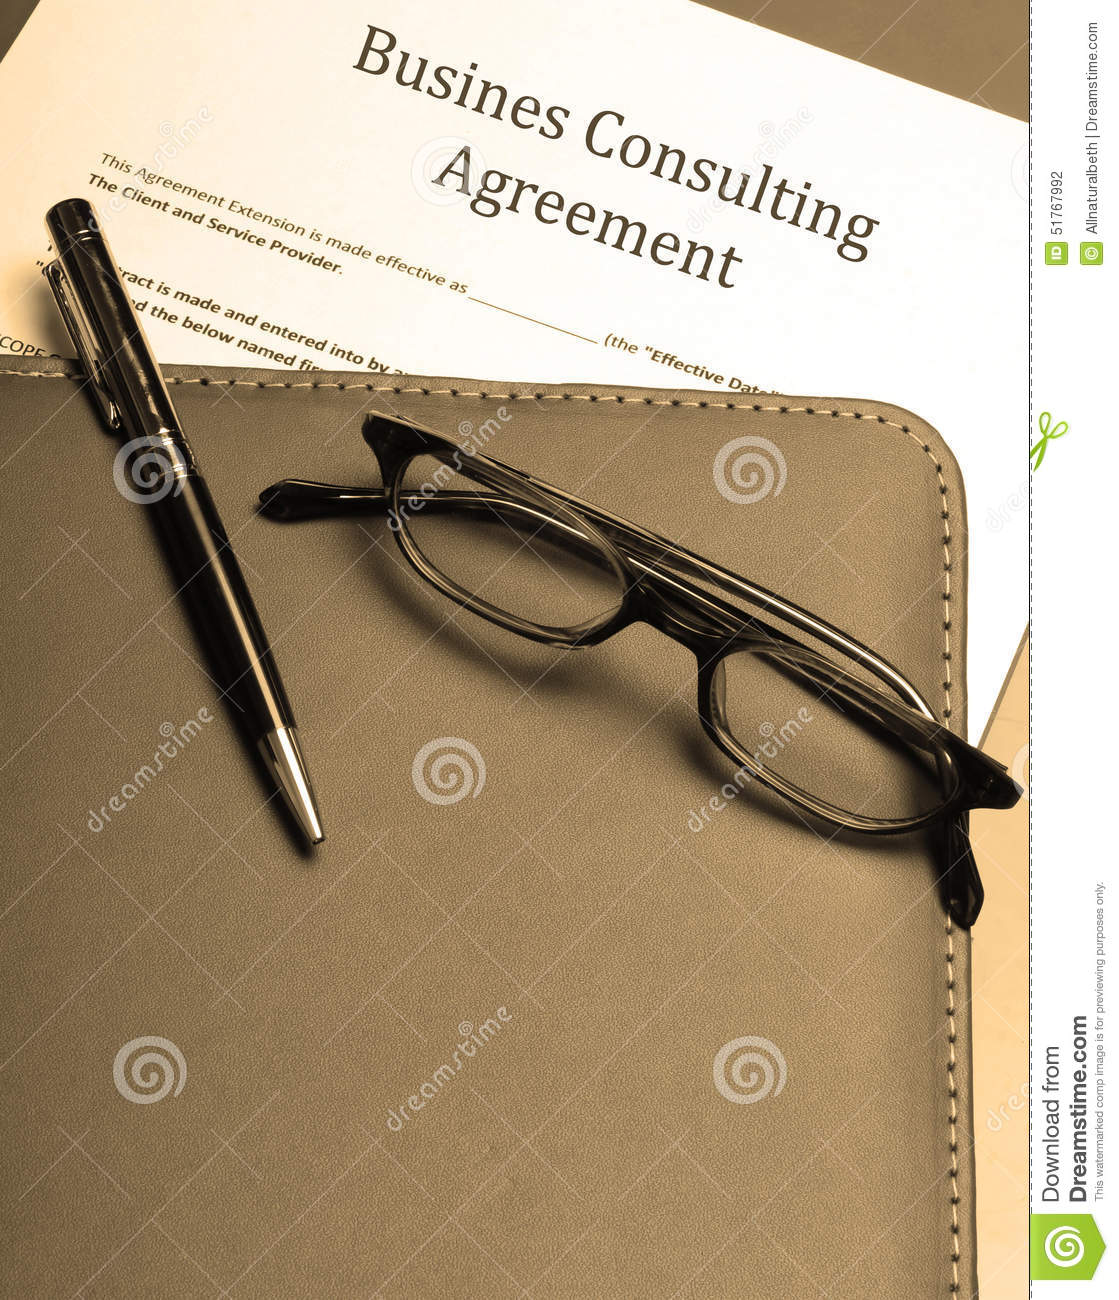 Business Consulting Agreement Photo Image 51767992 – Business Consulting Agreements